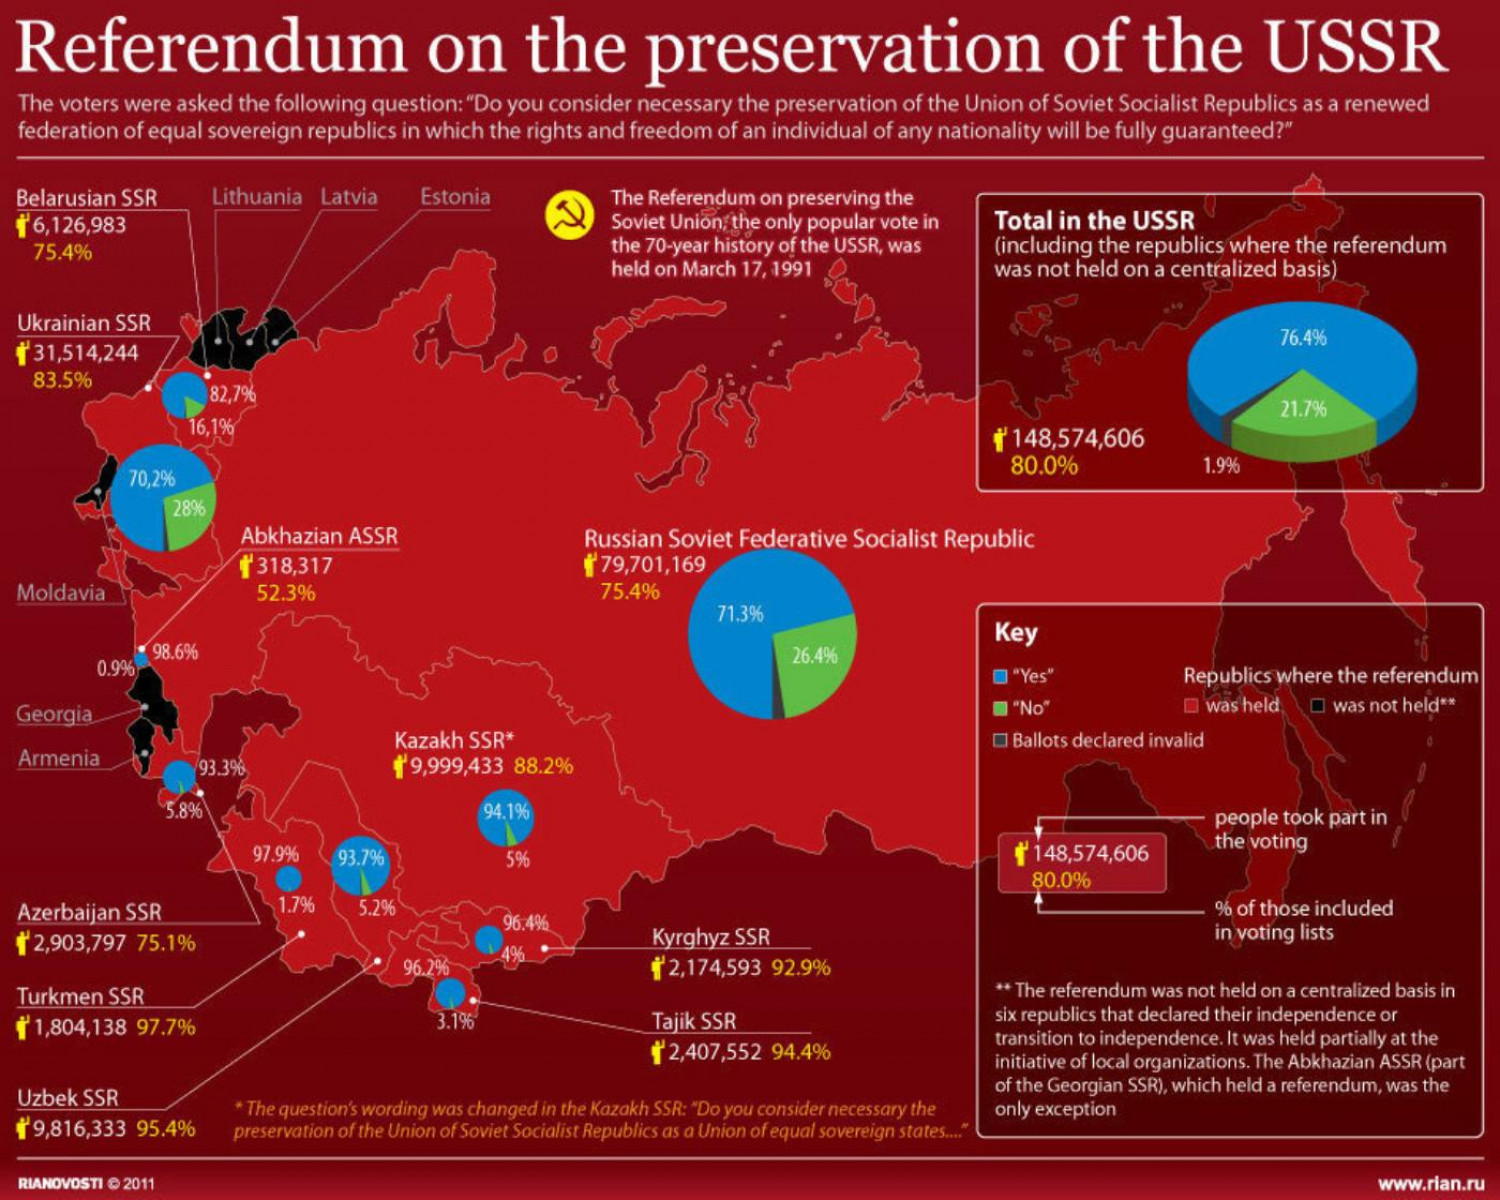 Referendum on the preservation of the USSR Infographic